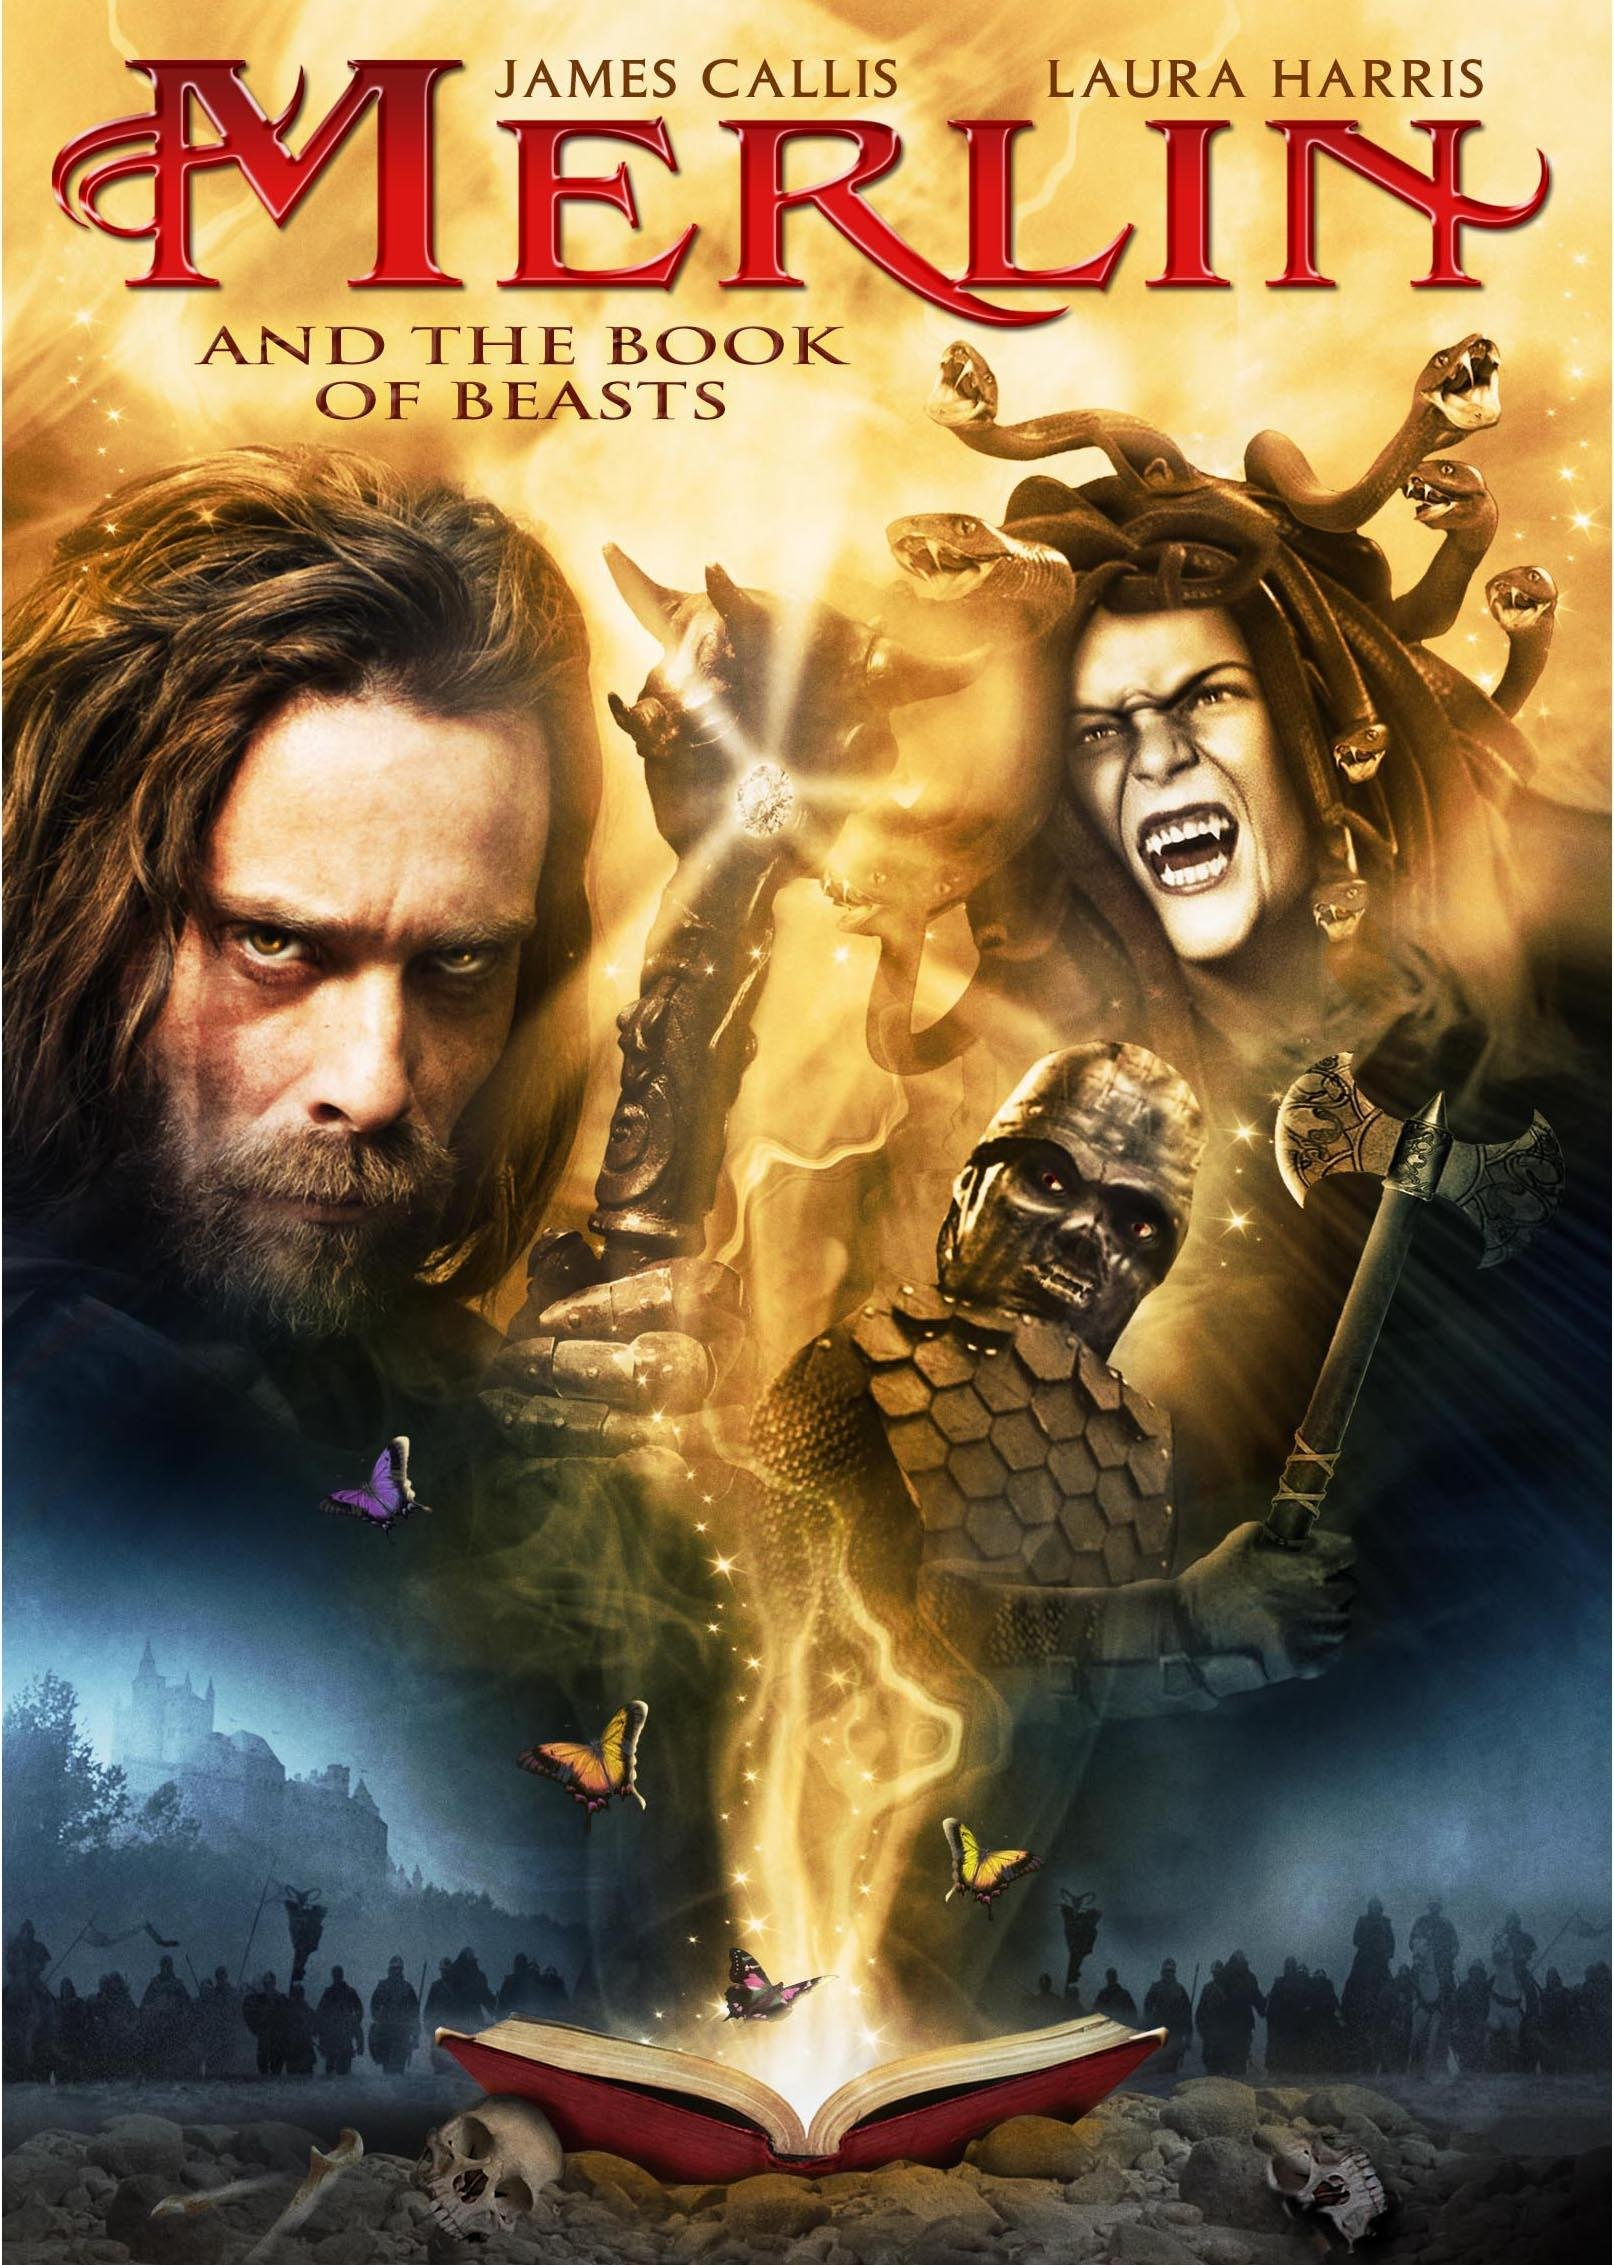 Amazon.com: Merlin and the Book of Beasts: James Callis, Laura ...